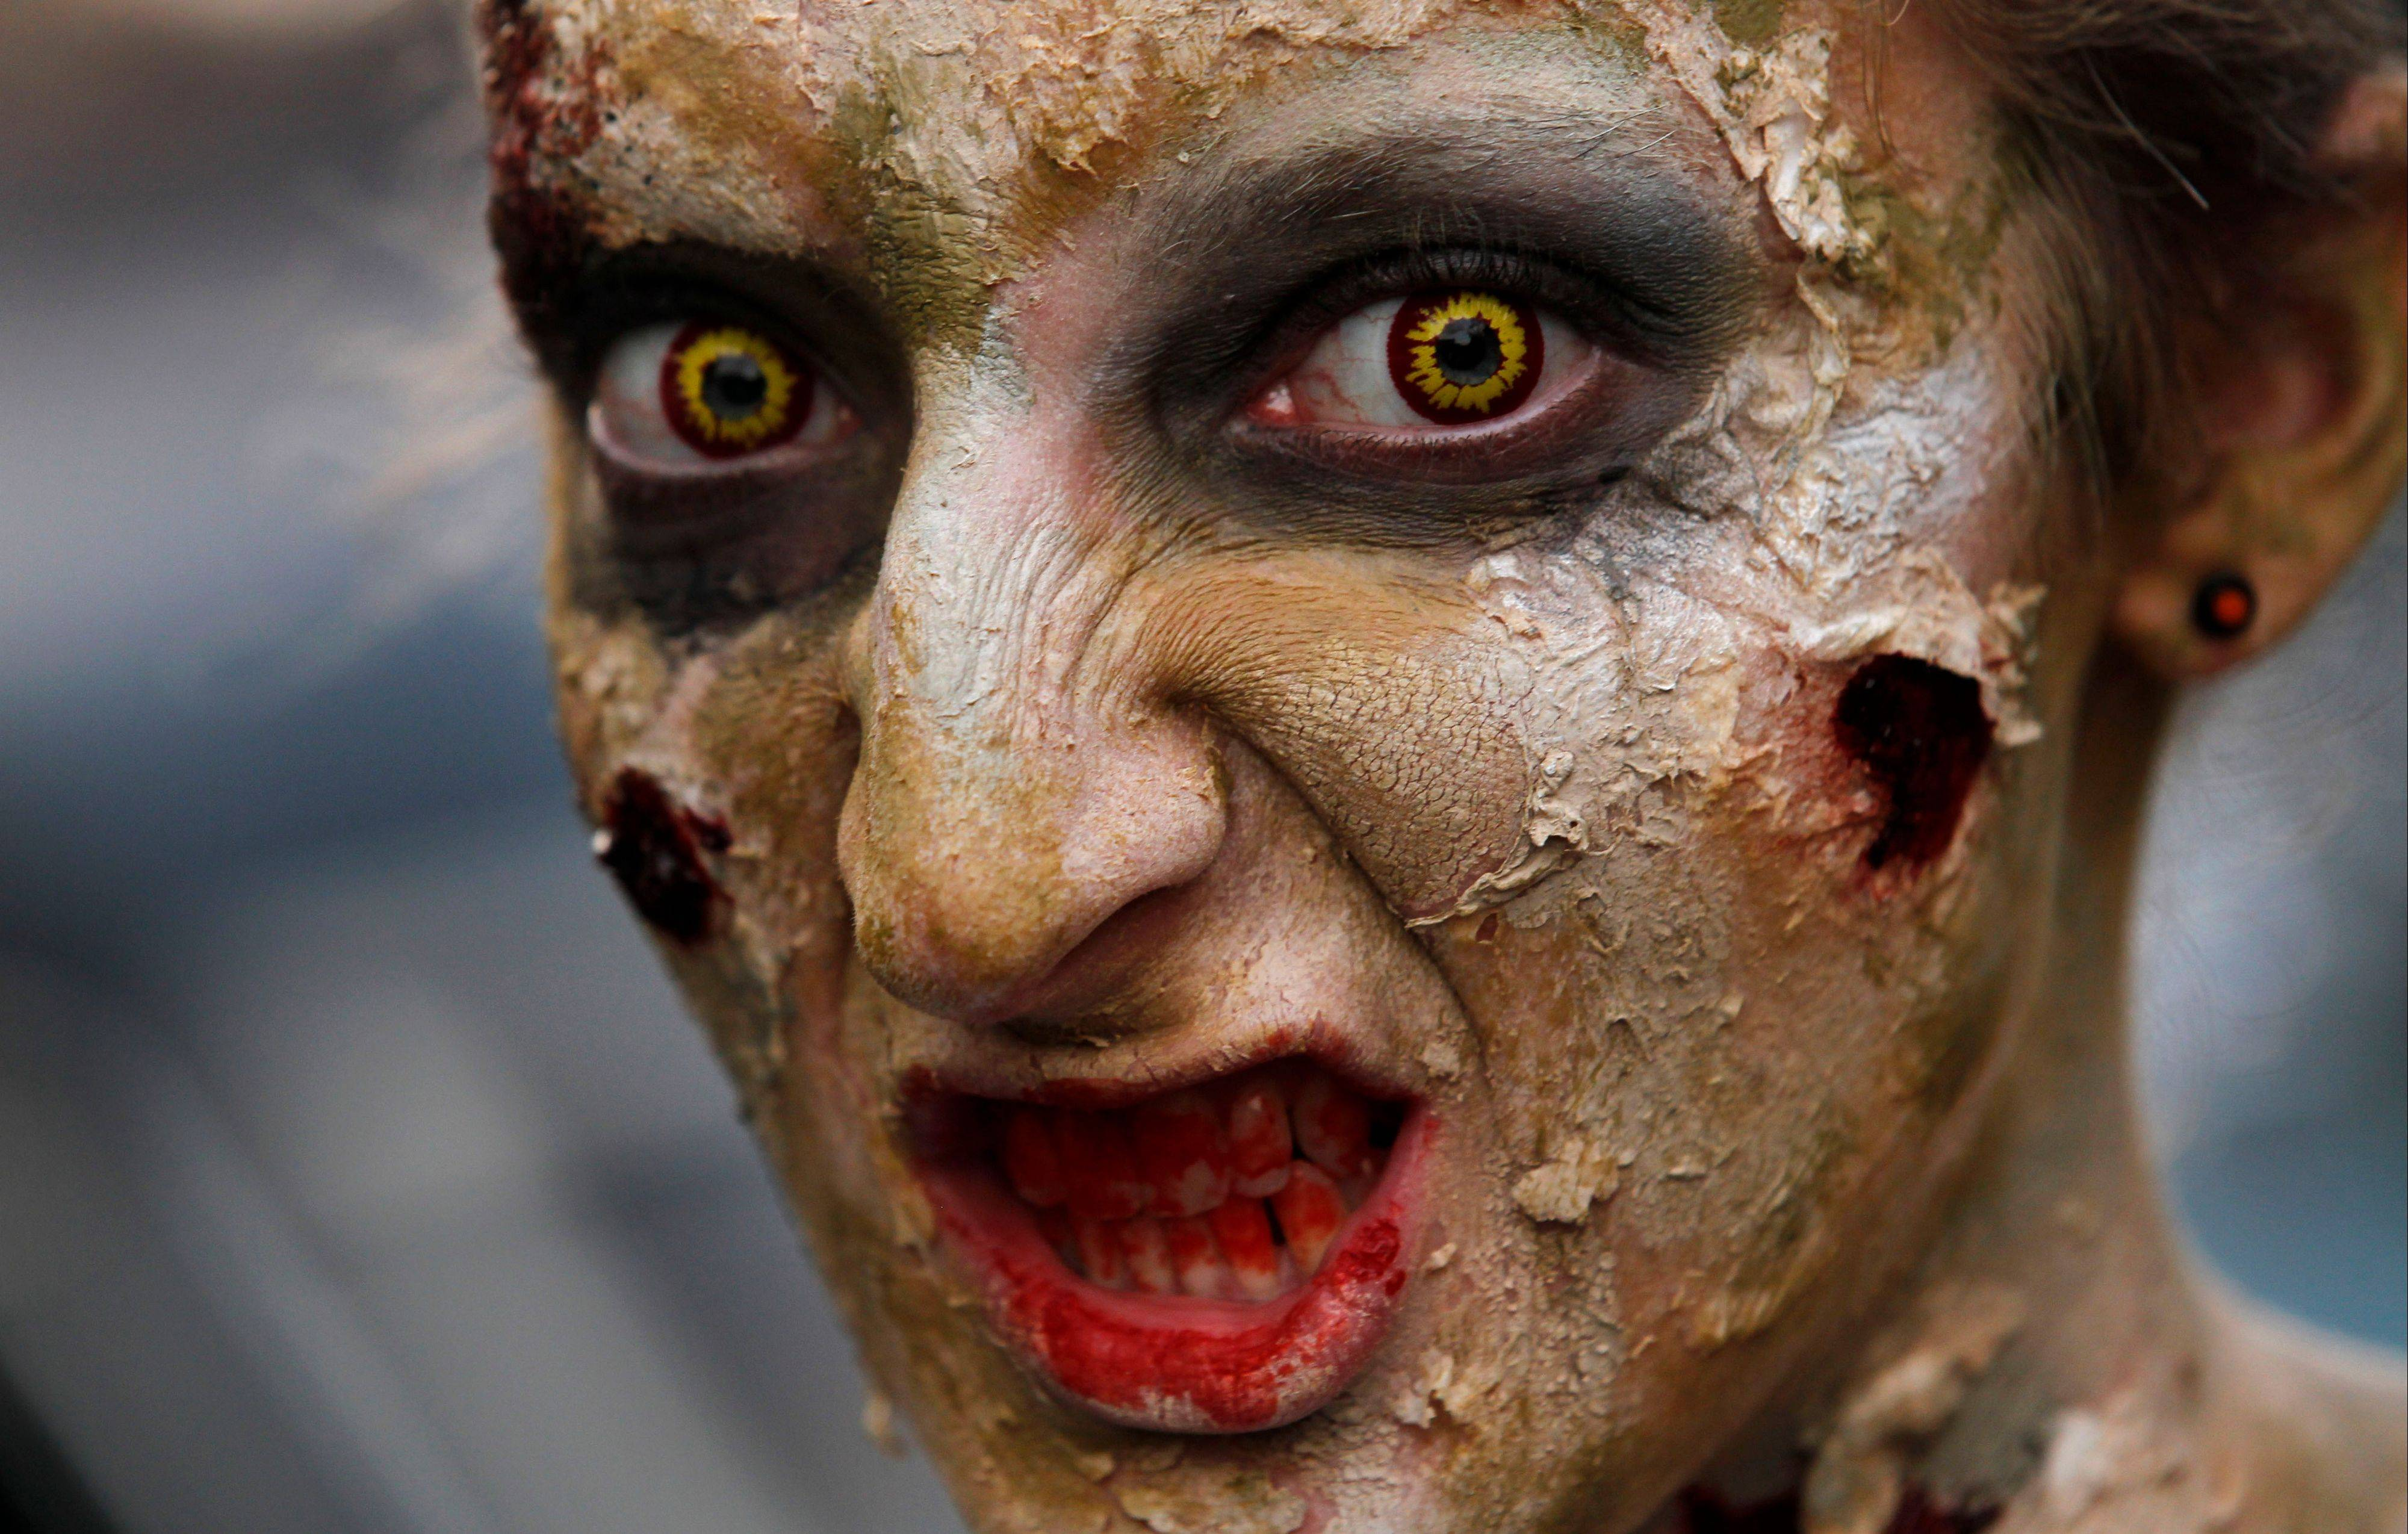 An actor in costume and makeup awaits visitors to the House of Shock, a haunted house, in New Orleans. Halloween-season attractions like House of Shock are big business.